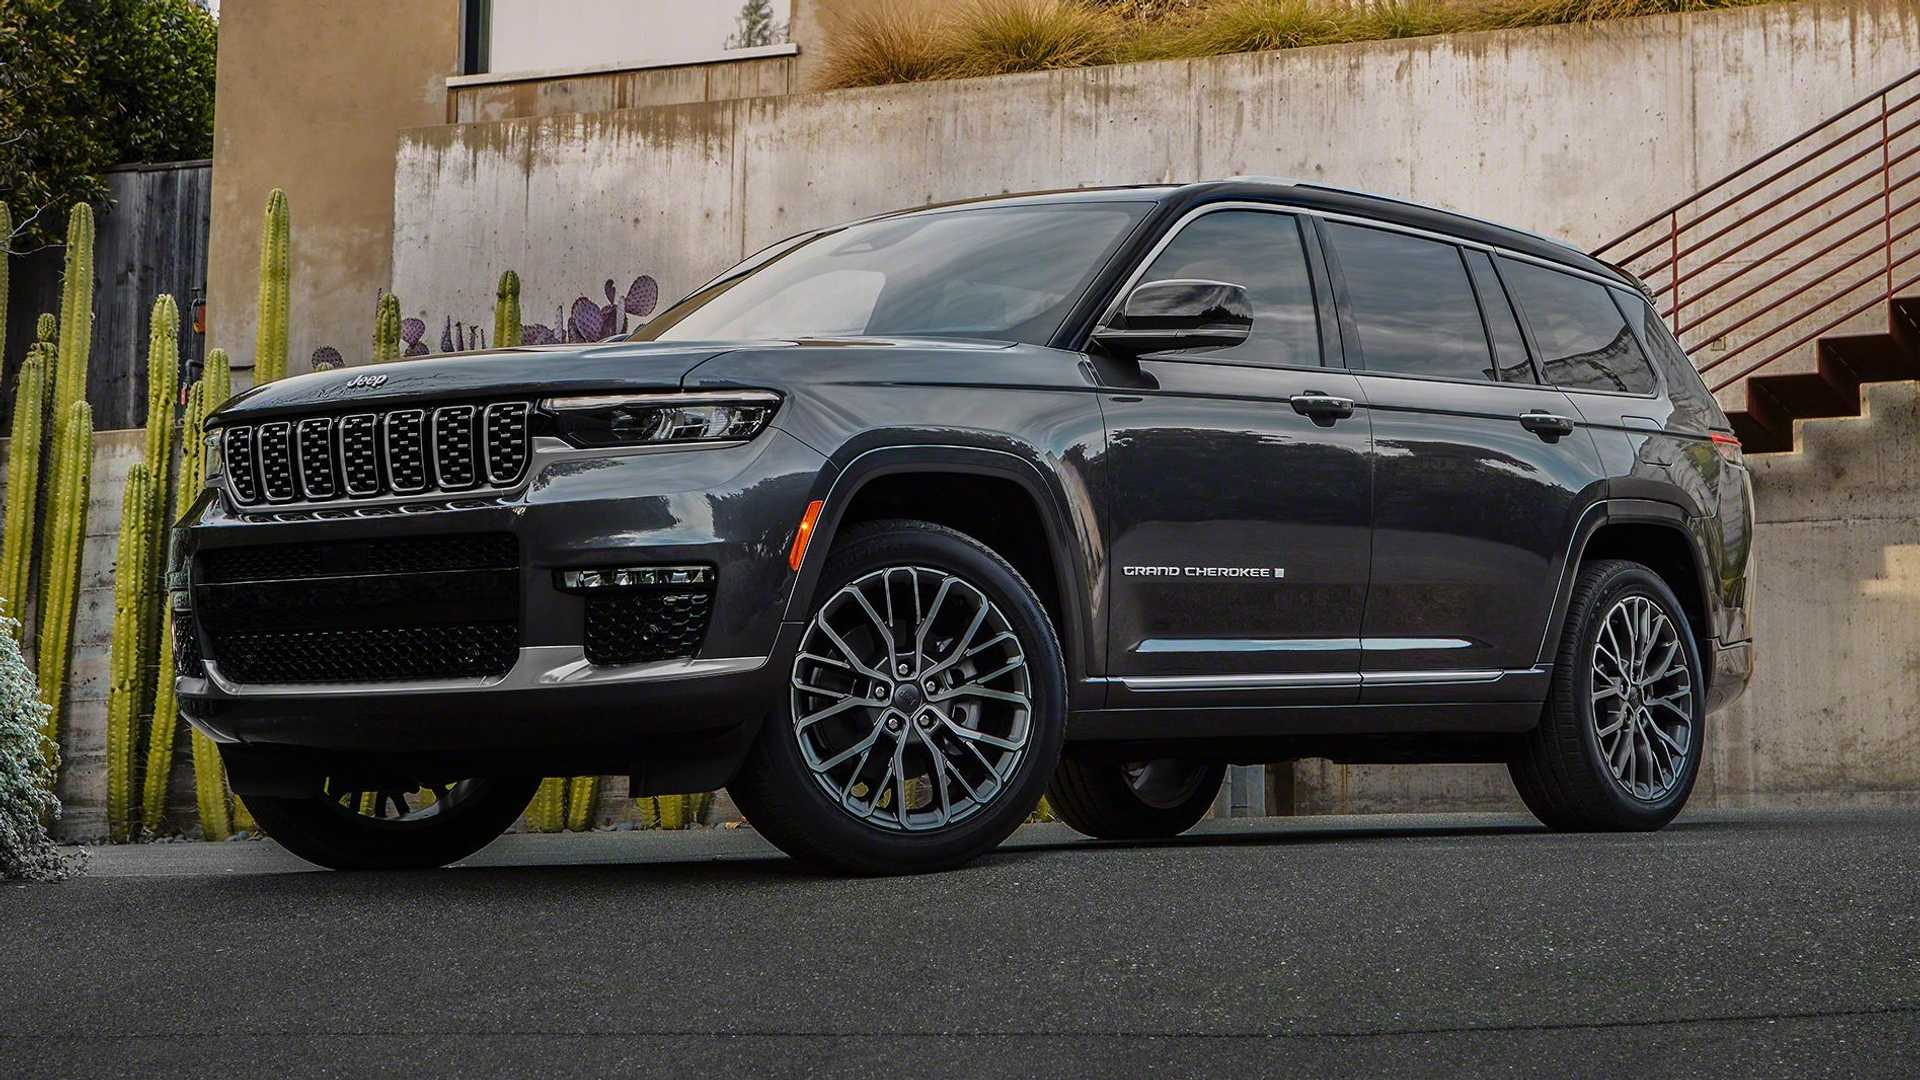 2019 Jeep Cherokee Upland: Package Information & Options